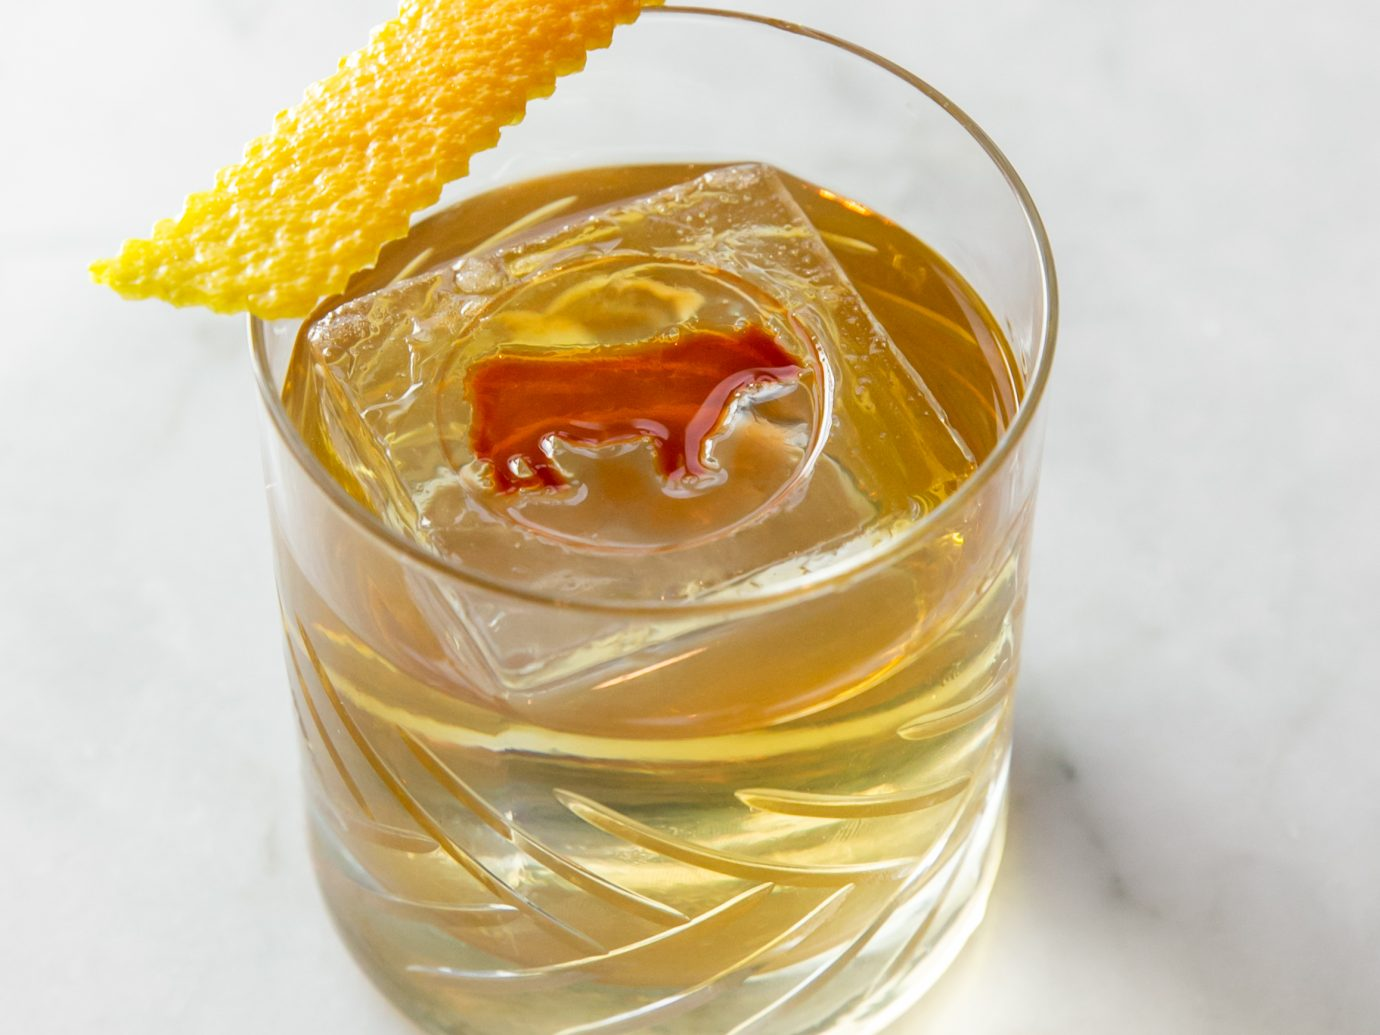 Old fashion with a cow decoration in drink